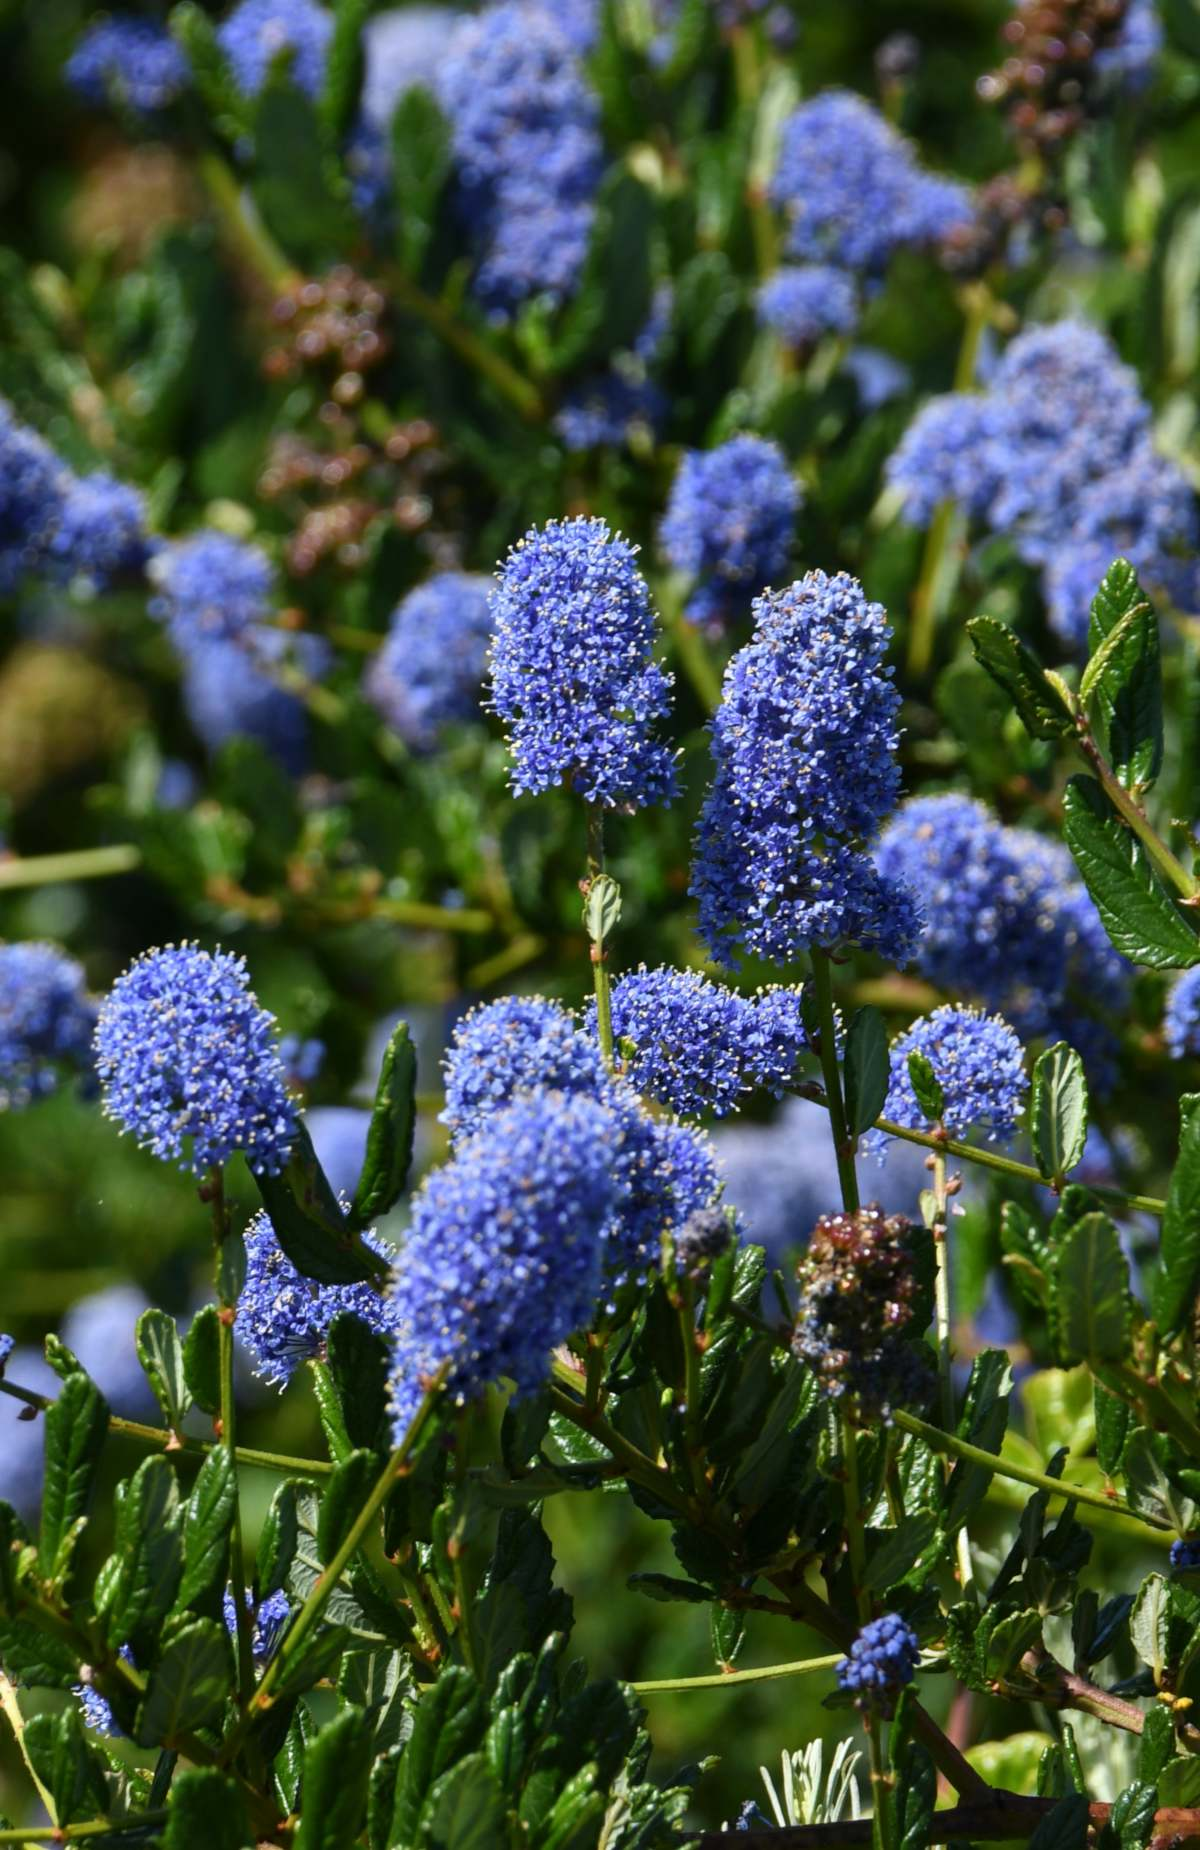 Blue flowers of the soap bush shrub